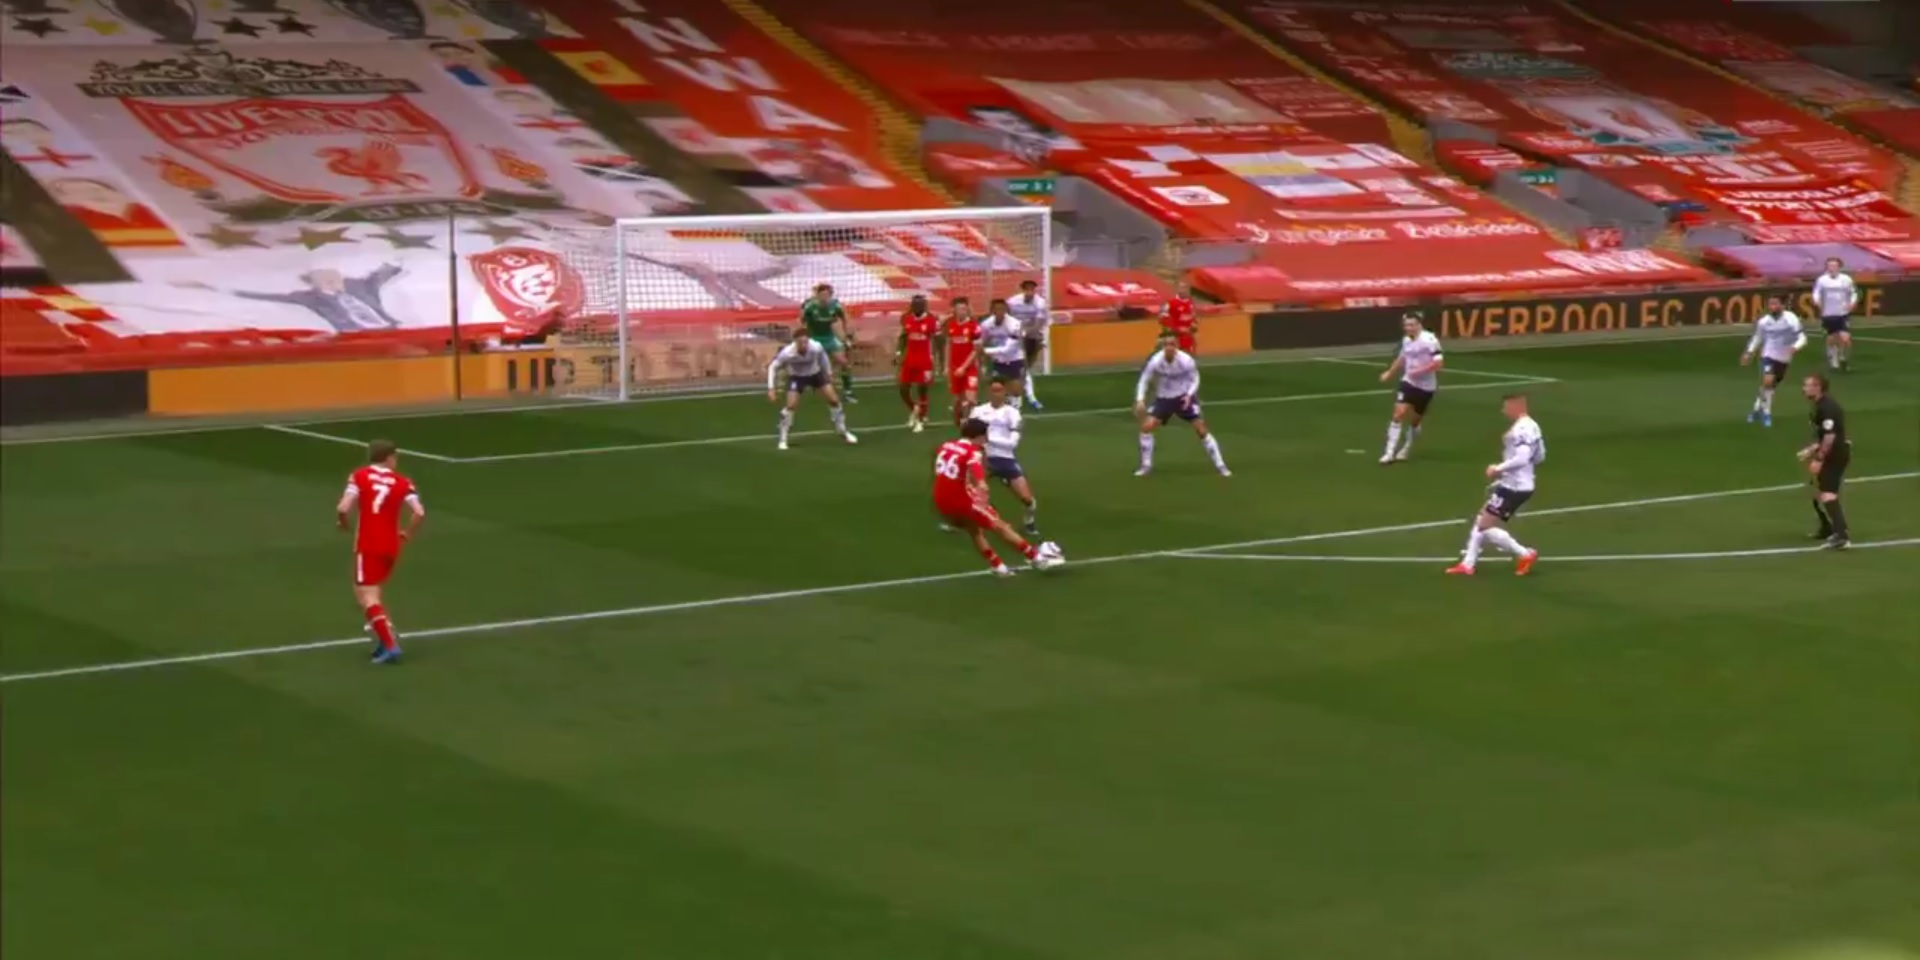 (Video) Brilliant new angle shows Trent's match-winning goal was near-impossible